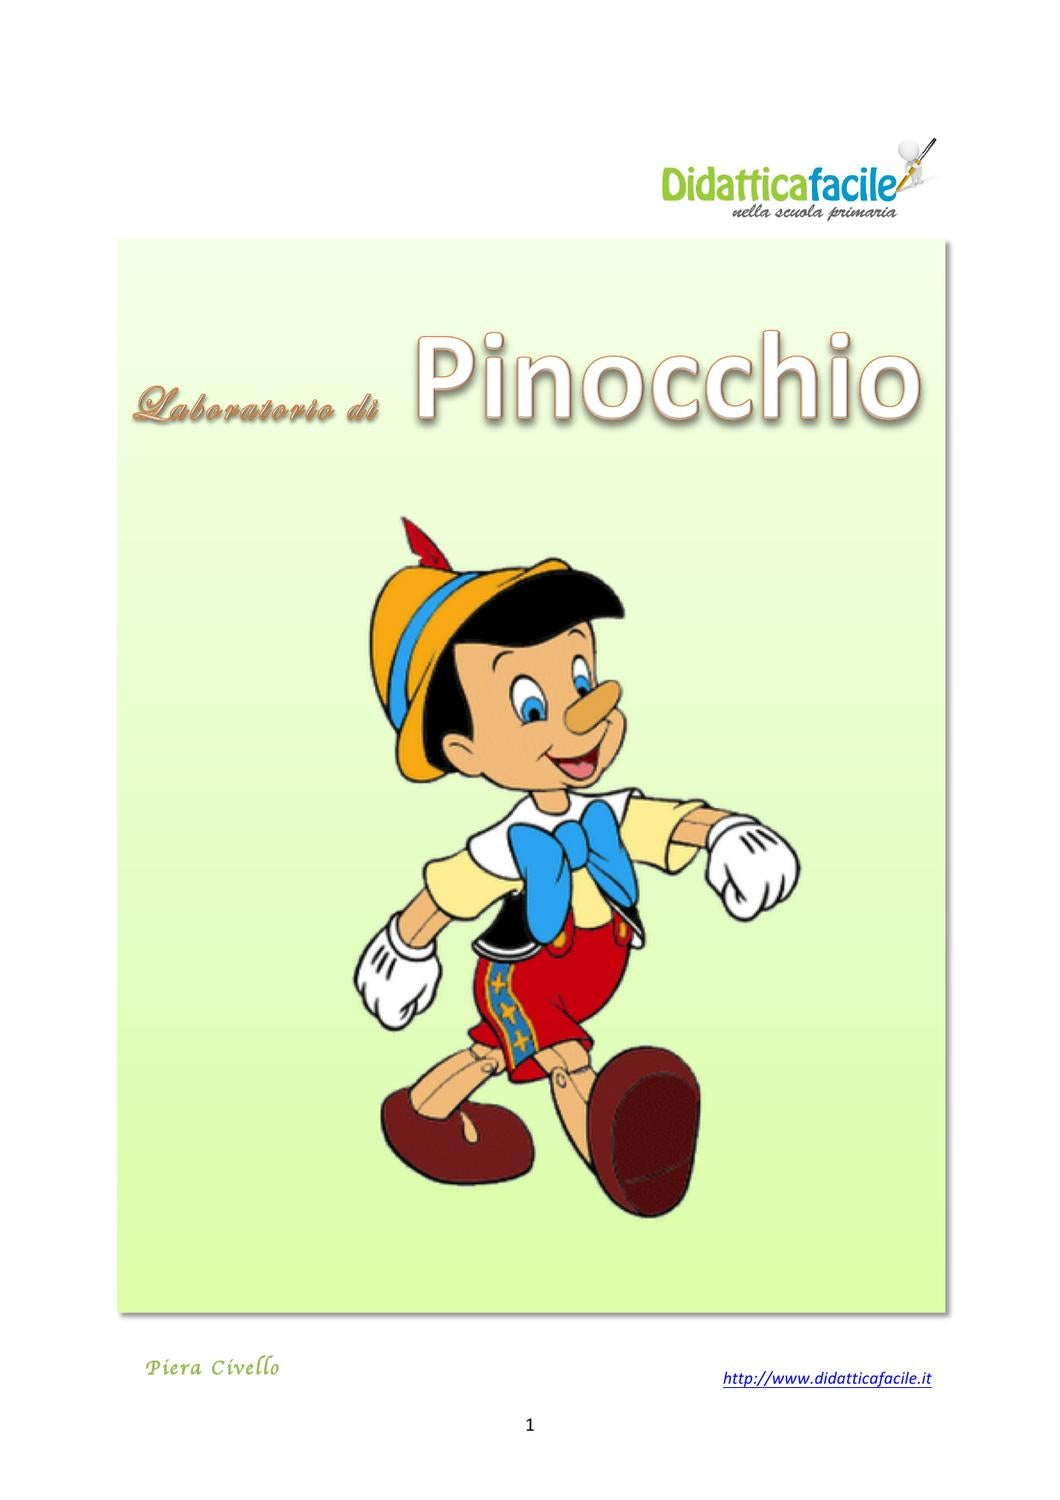 Laboratorio di pinocchio by piera civello